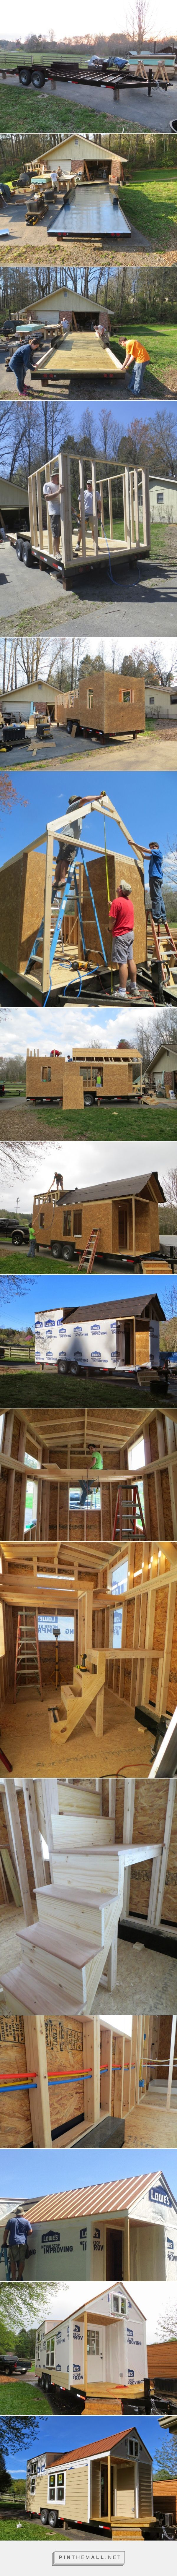 How to Build a Tiny House: The Robins Nest by Brevard Tiny House Co.... - a grouped images picture - Pin Them All